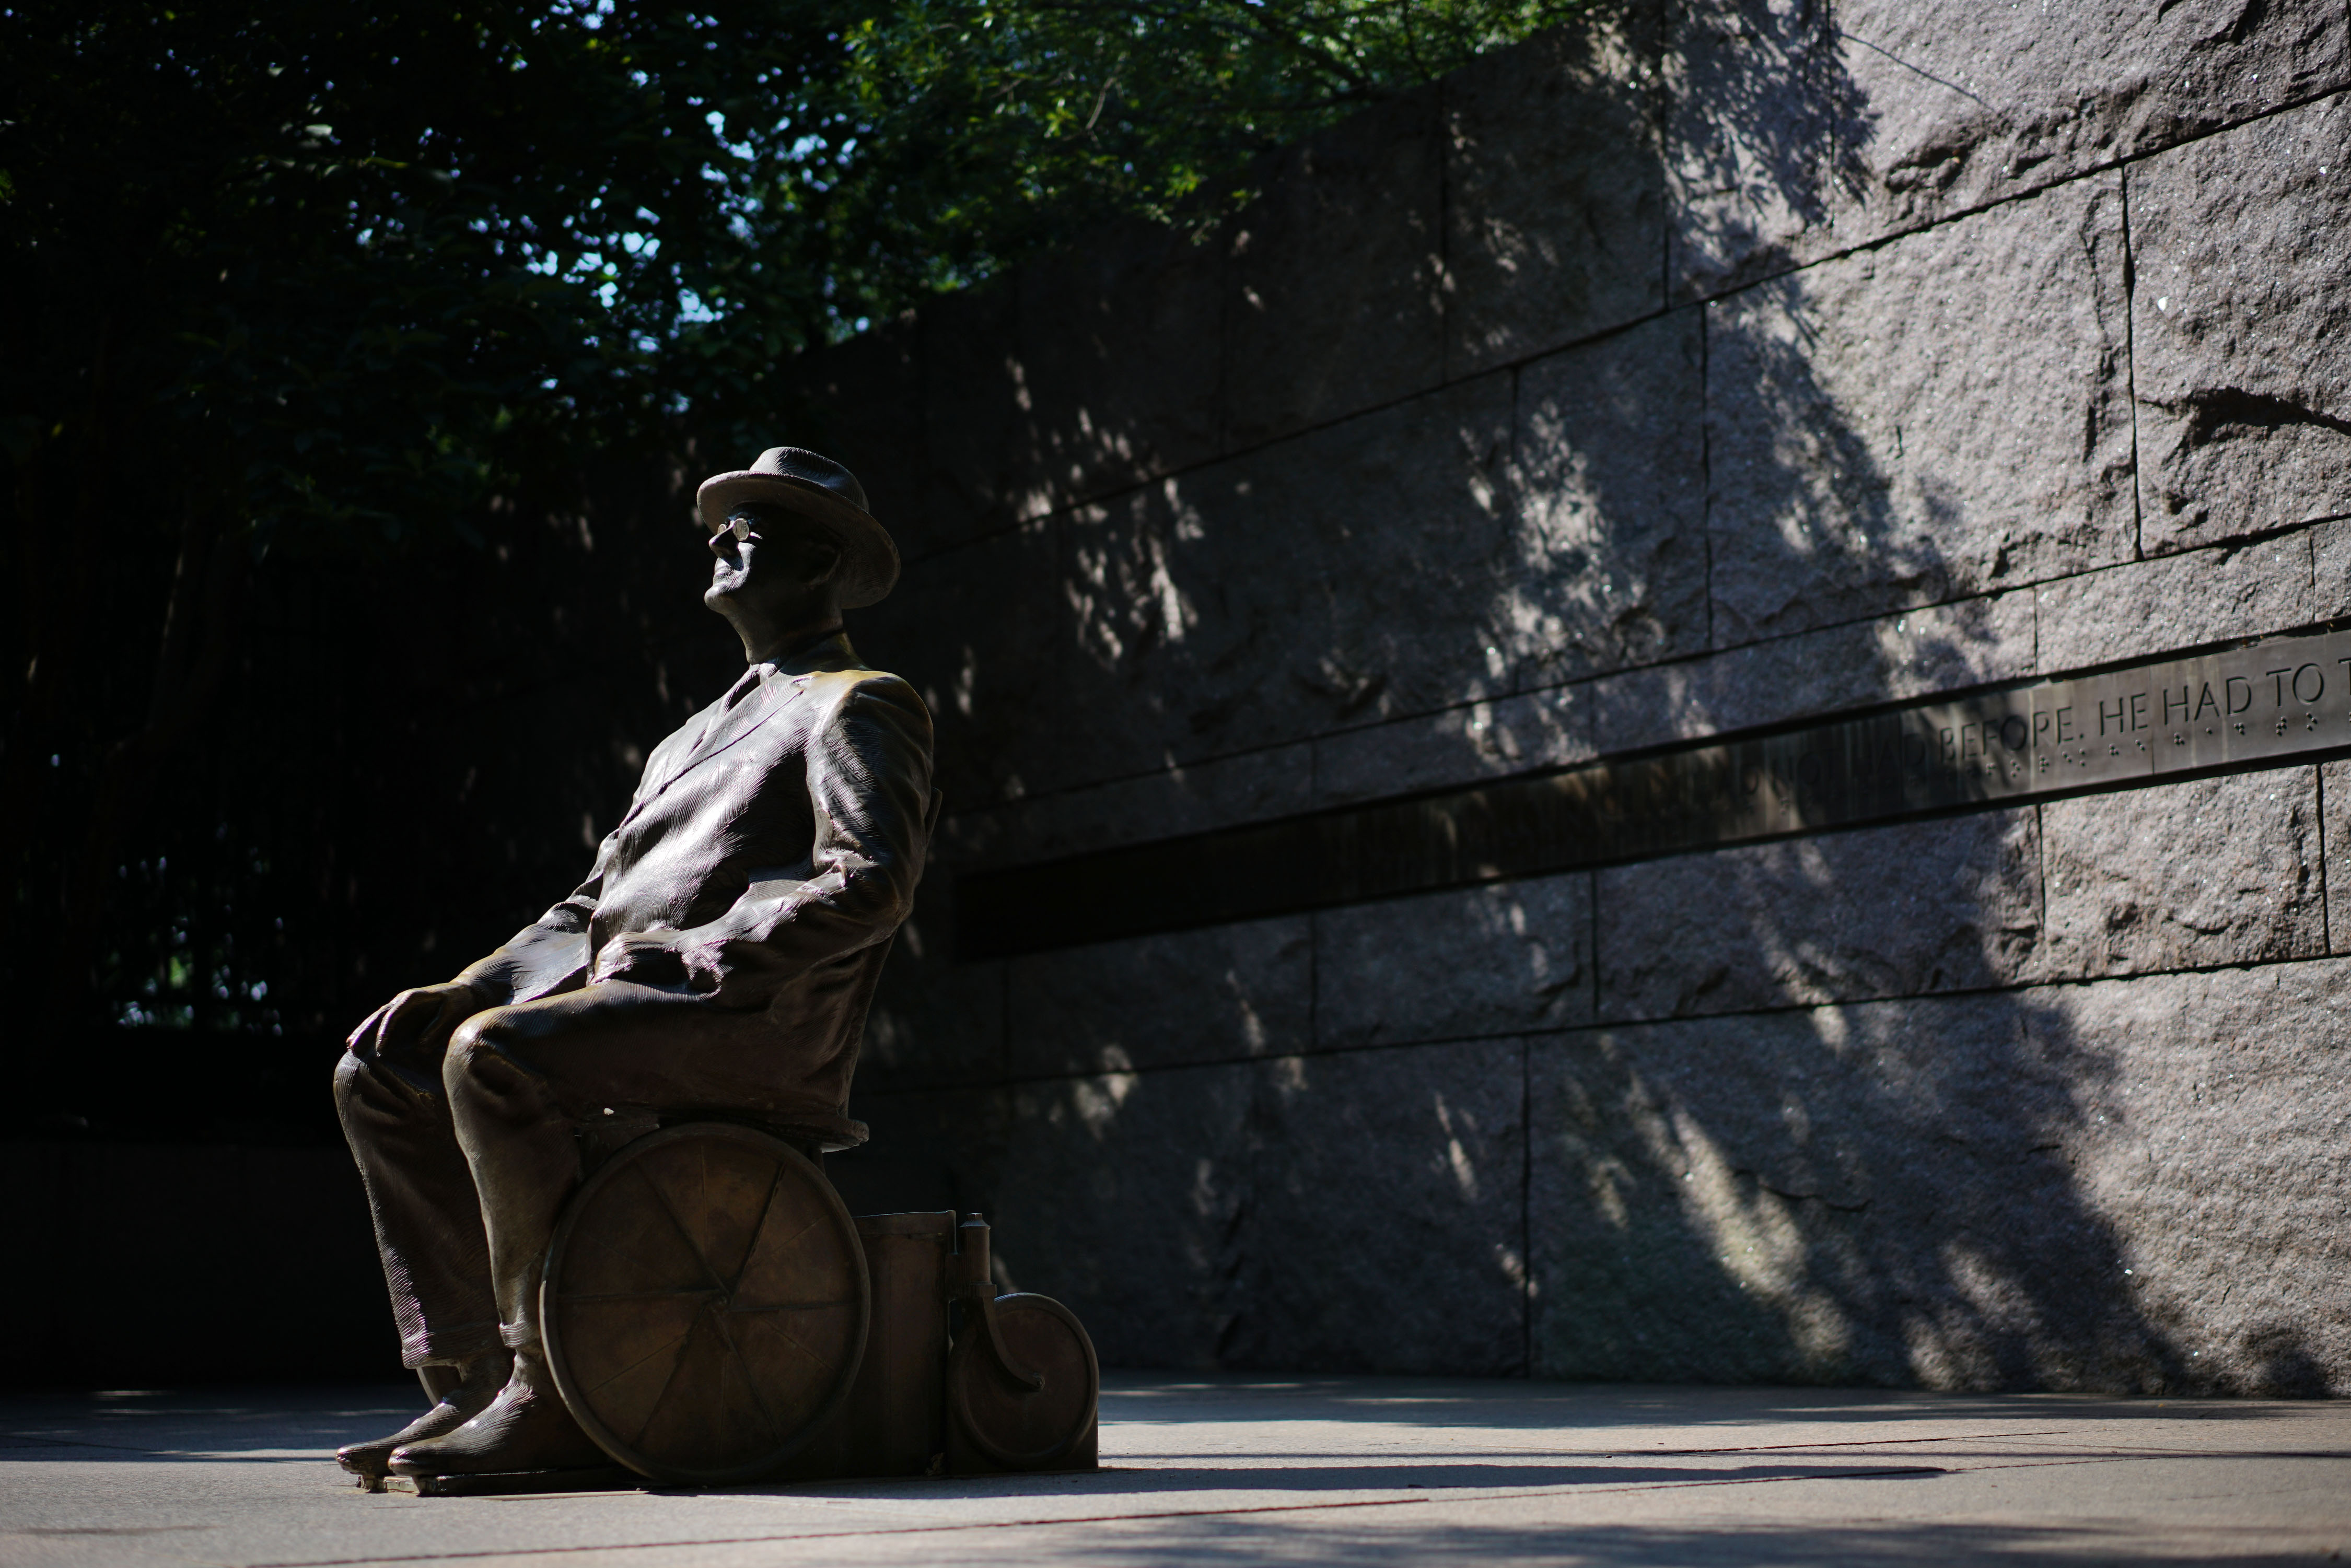 A statue of former US president Franklin Delano Roosevelt is seen at the Franklin Delano Roosevelt Memorial in Washington, D.C. on July 2, 2018.